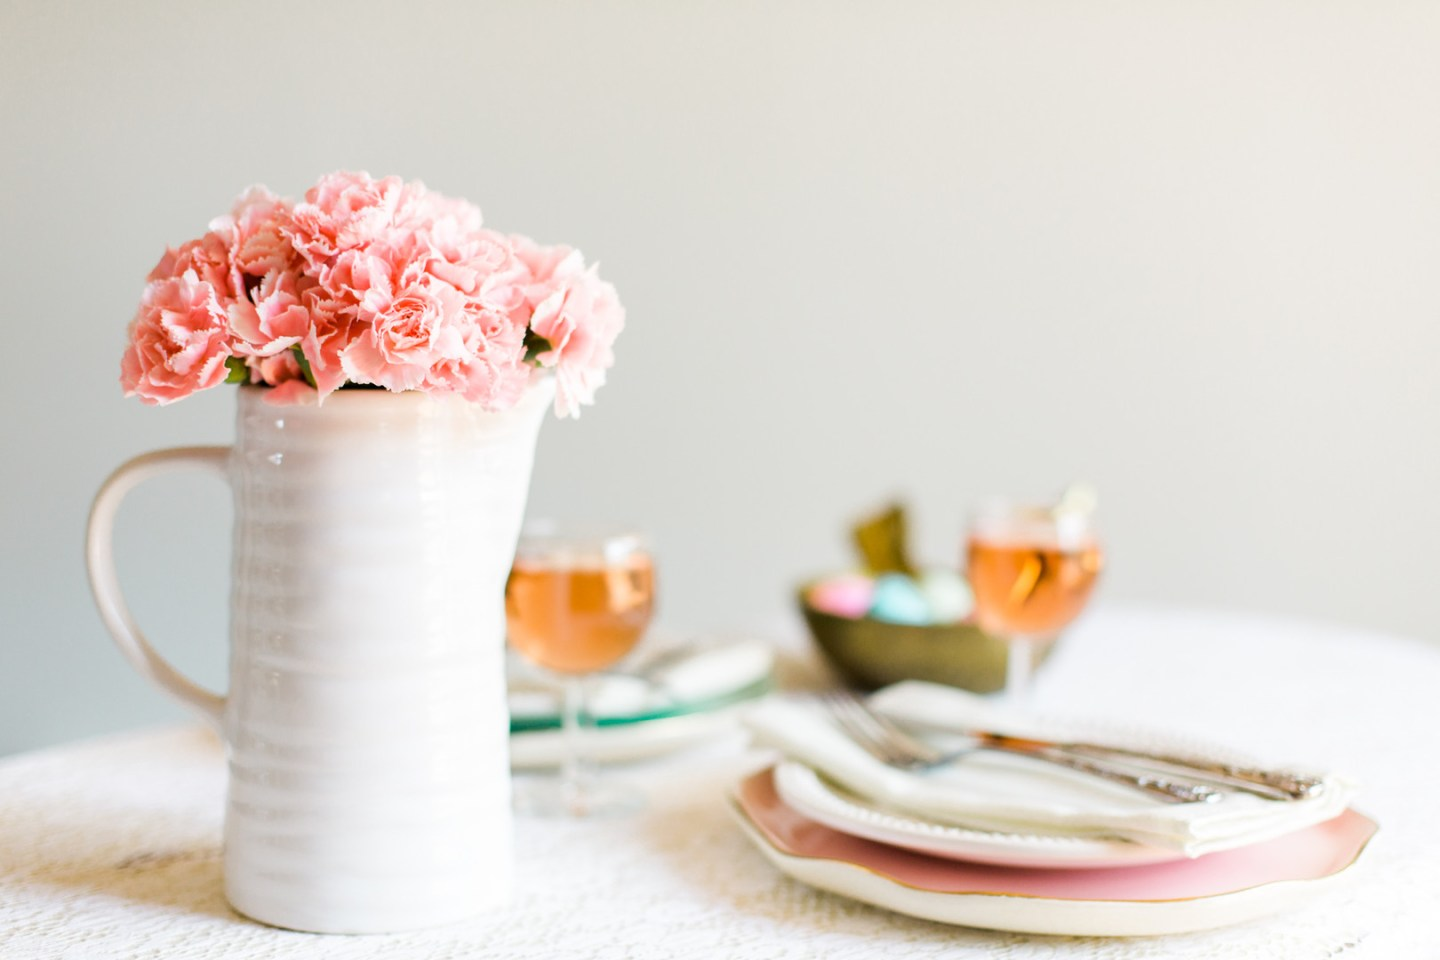 Staal_KristinaStaalPhotography_KristinaStaalPhotographyEasterTablescape20167_big Easy Entertaining: Easter Brunch Inspiration for Two